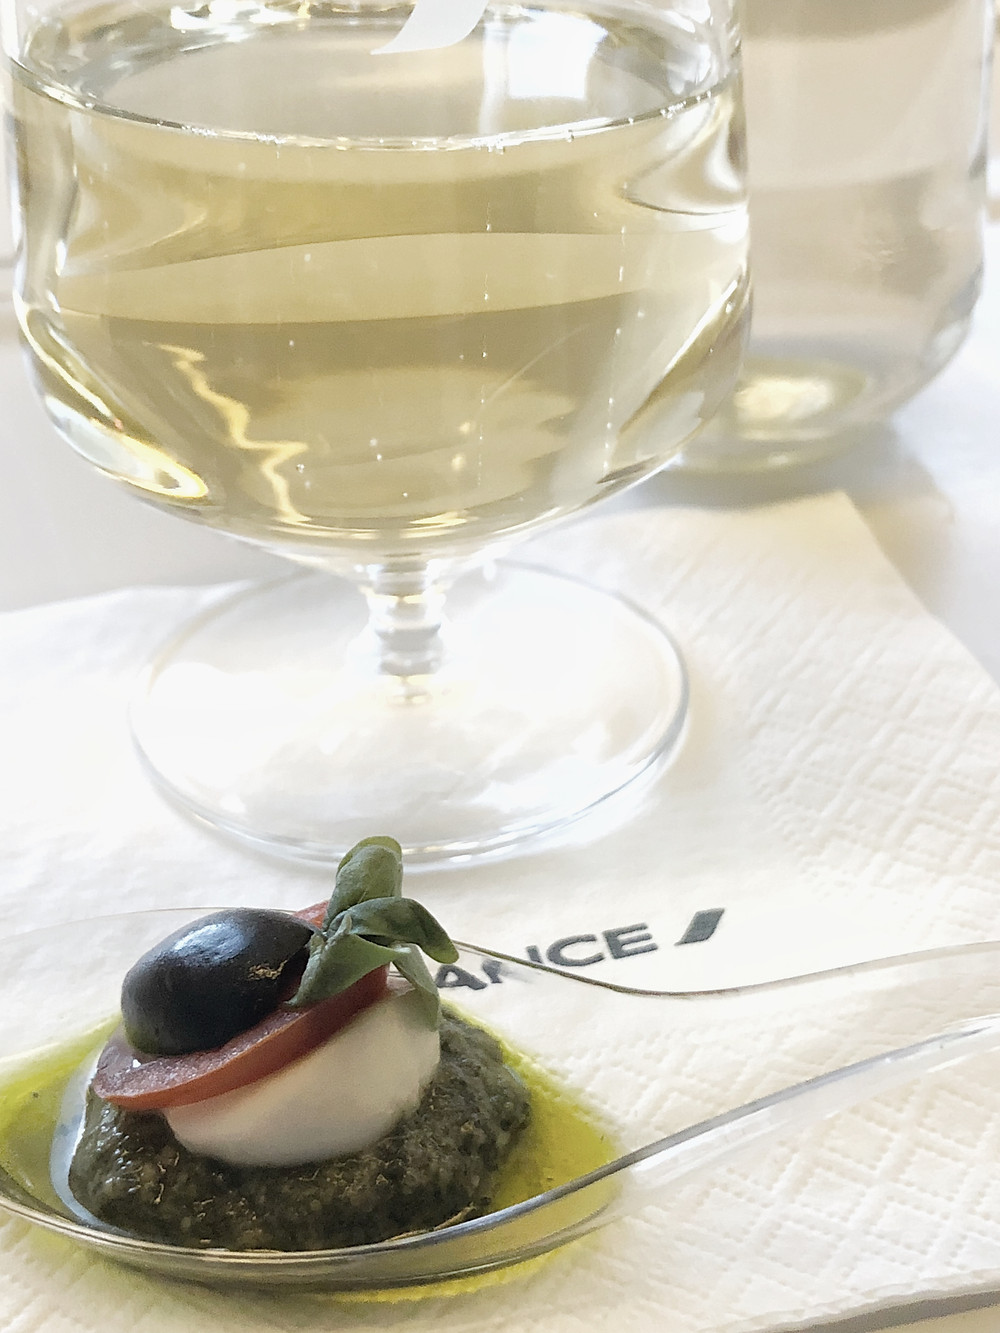 Air France Business Class, The Amuse Bouche